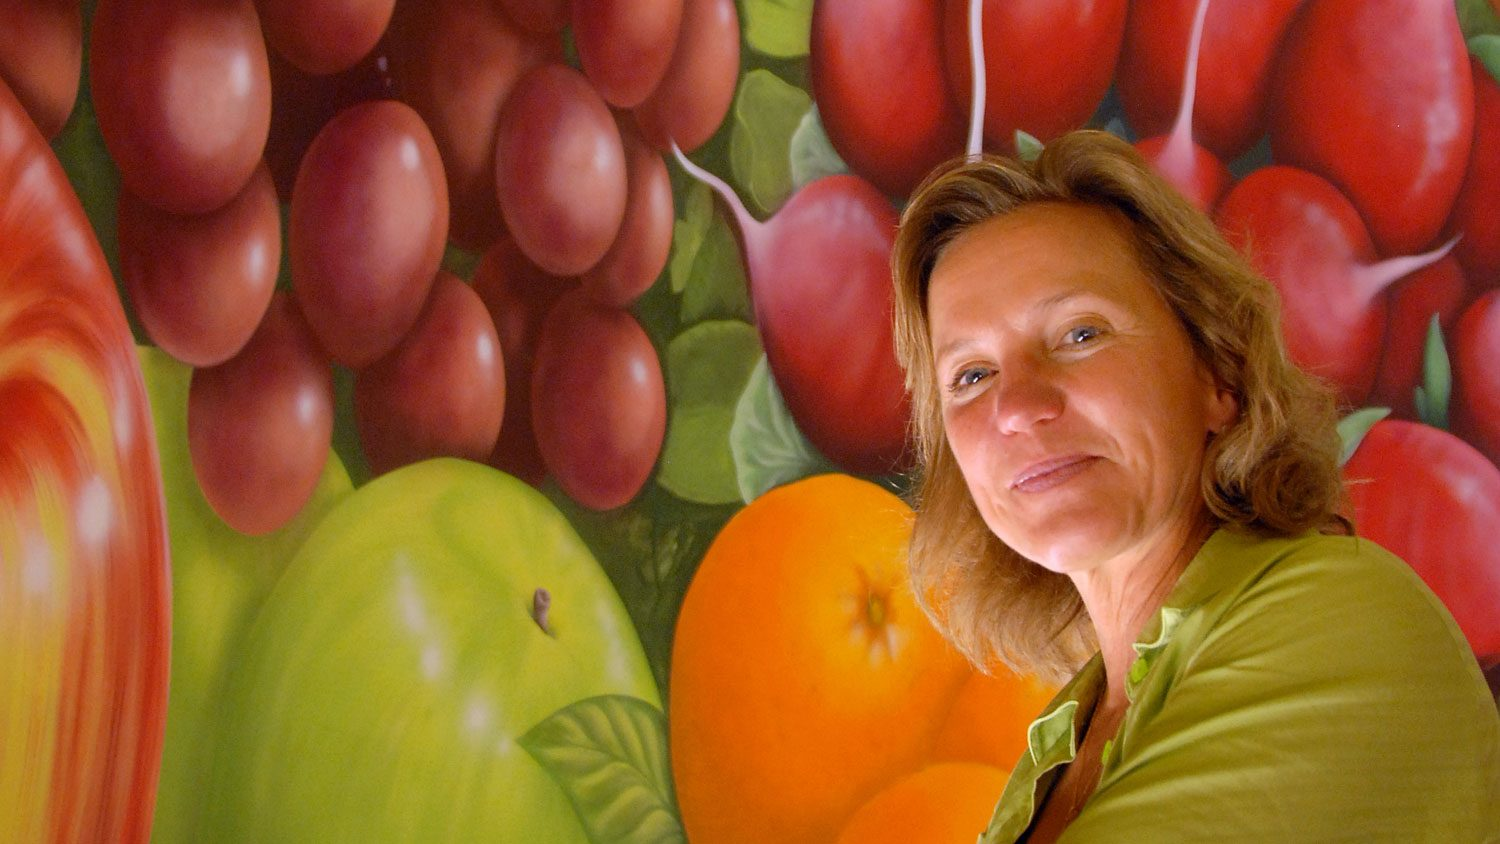 Woman in front of fruit mural